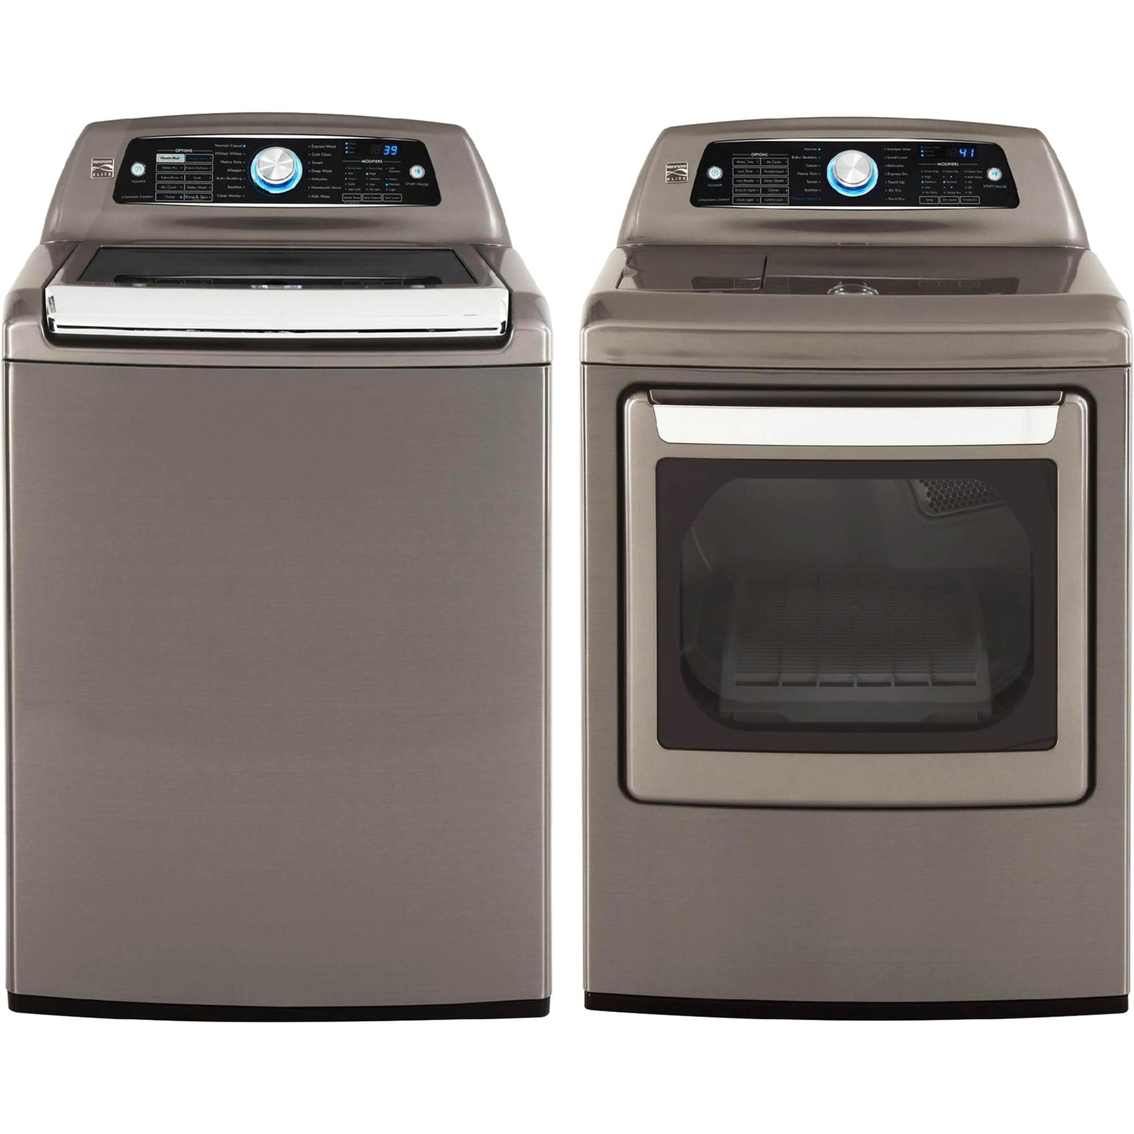 Washer And Dryers Gas Washer And Dryer Combo